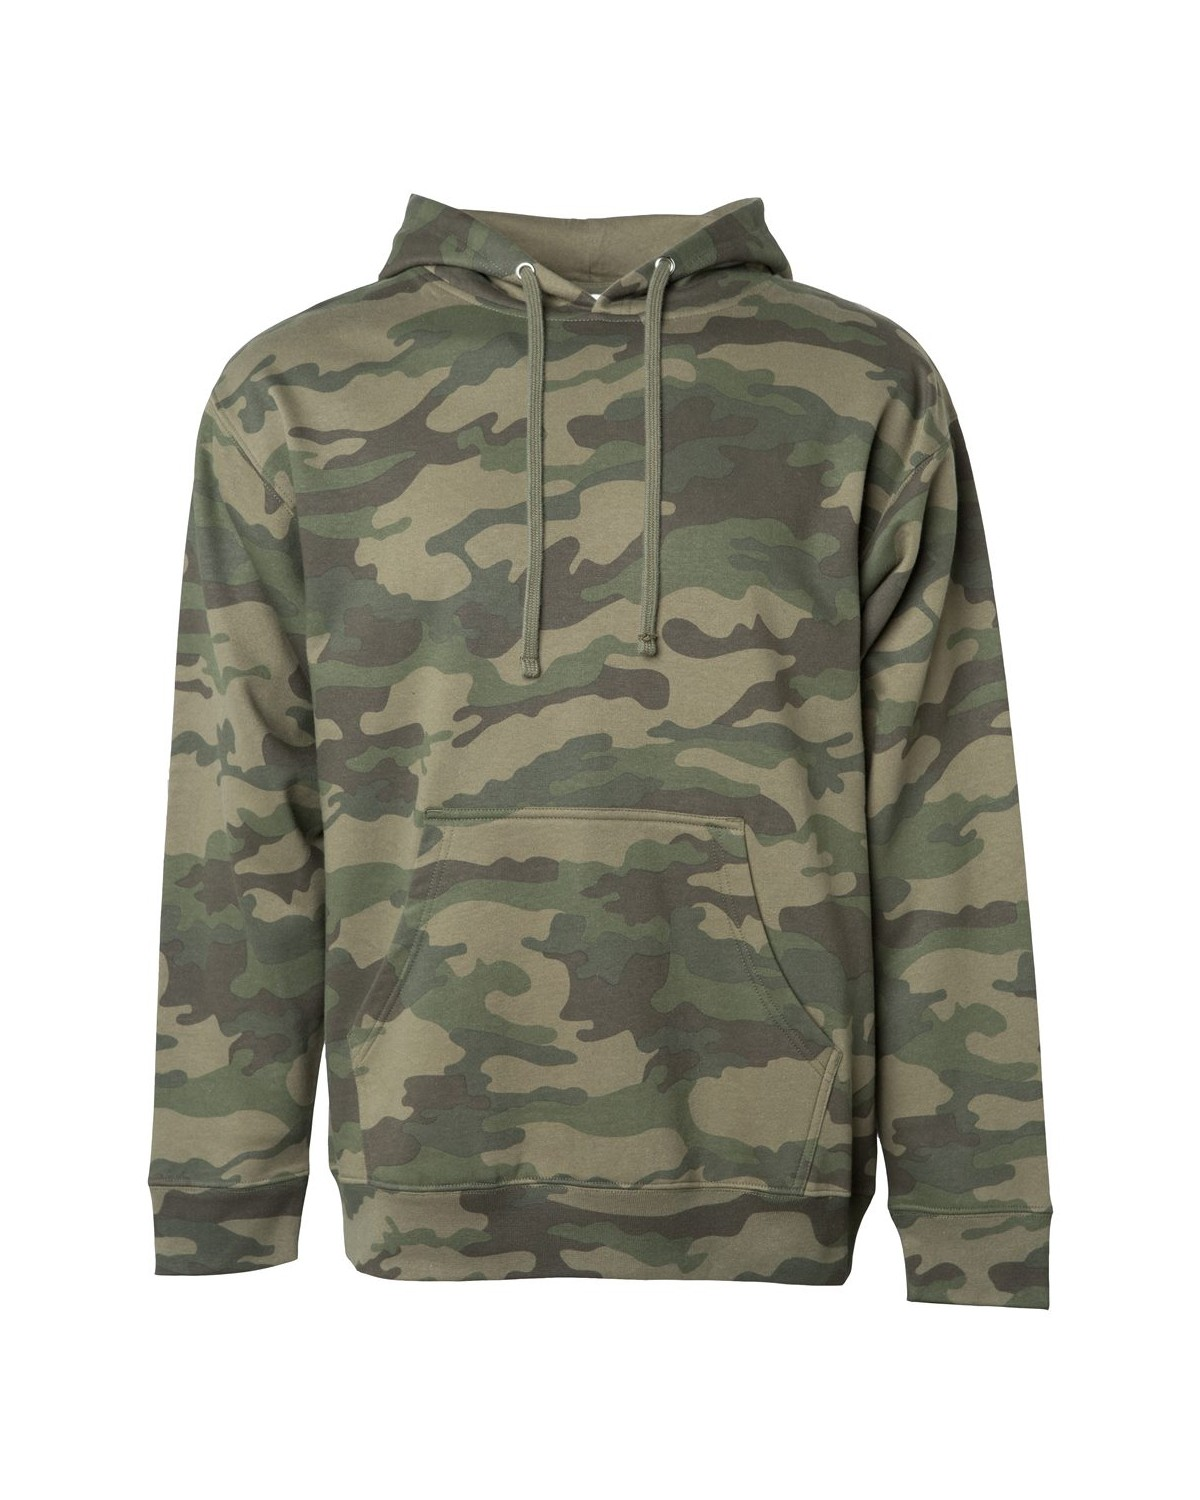 SS4500 Independent Trading Co. FOREST CAMO